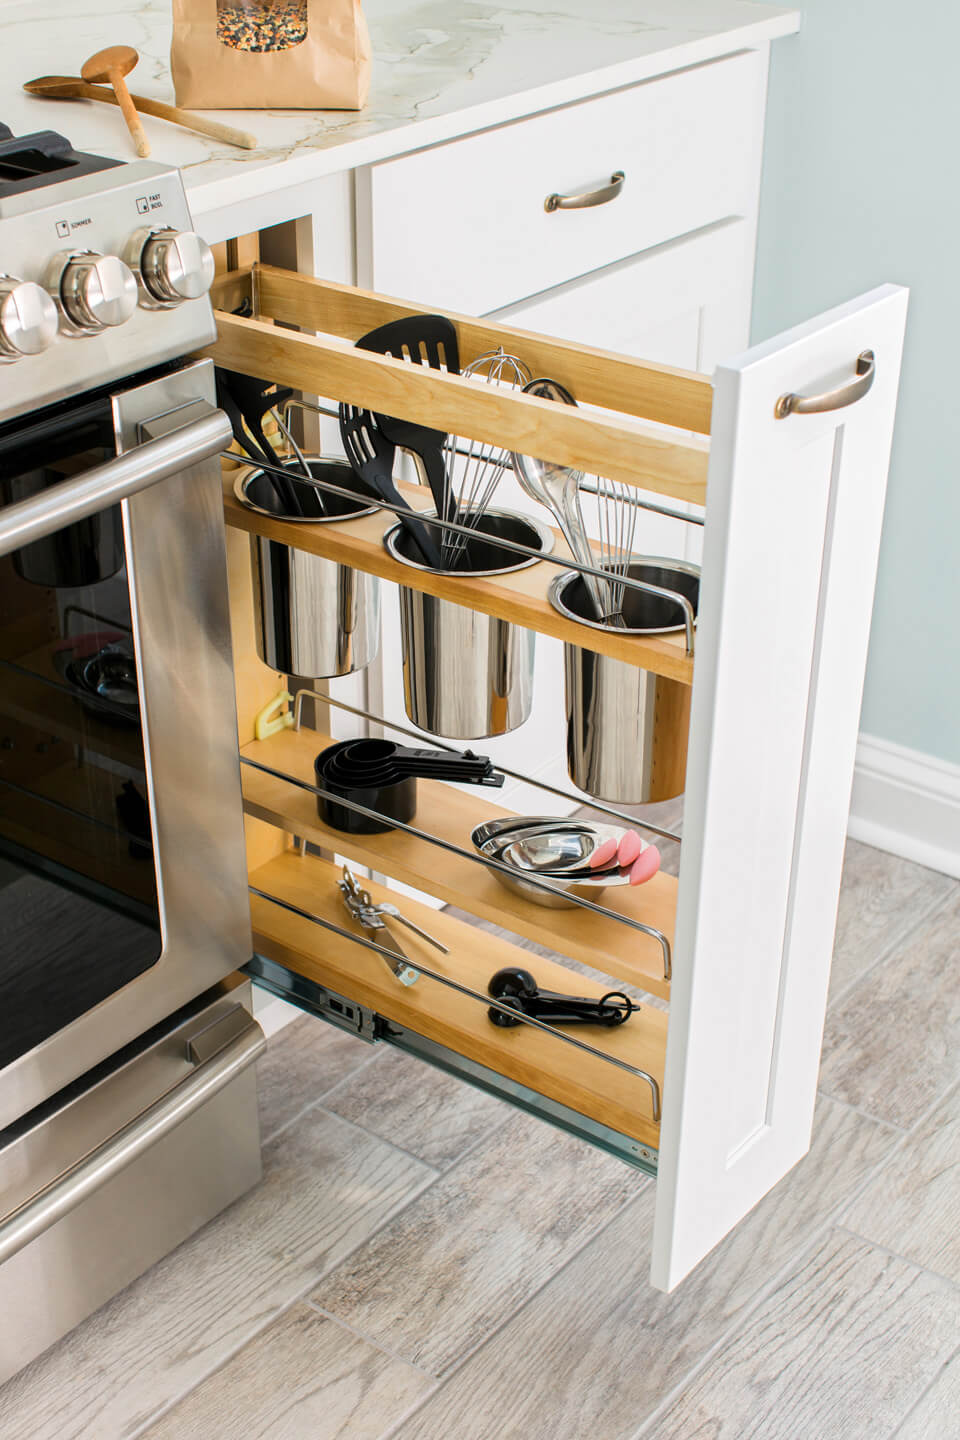 small kitchen storage ideas 35 Best Small Kitchen Storage Organization Ideas and Designs for 2018 small kitchen storage ideas